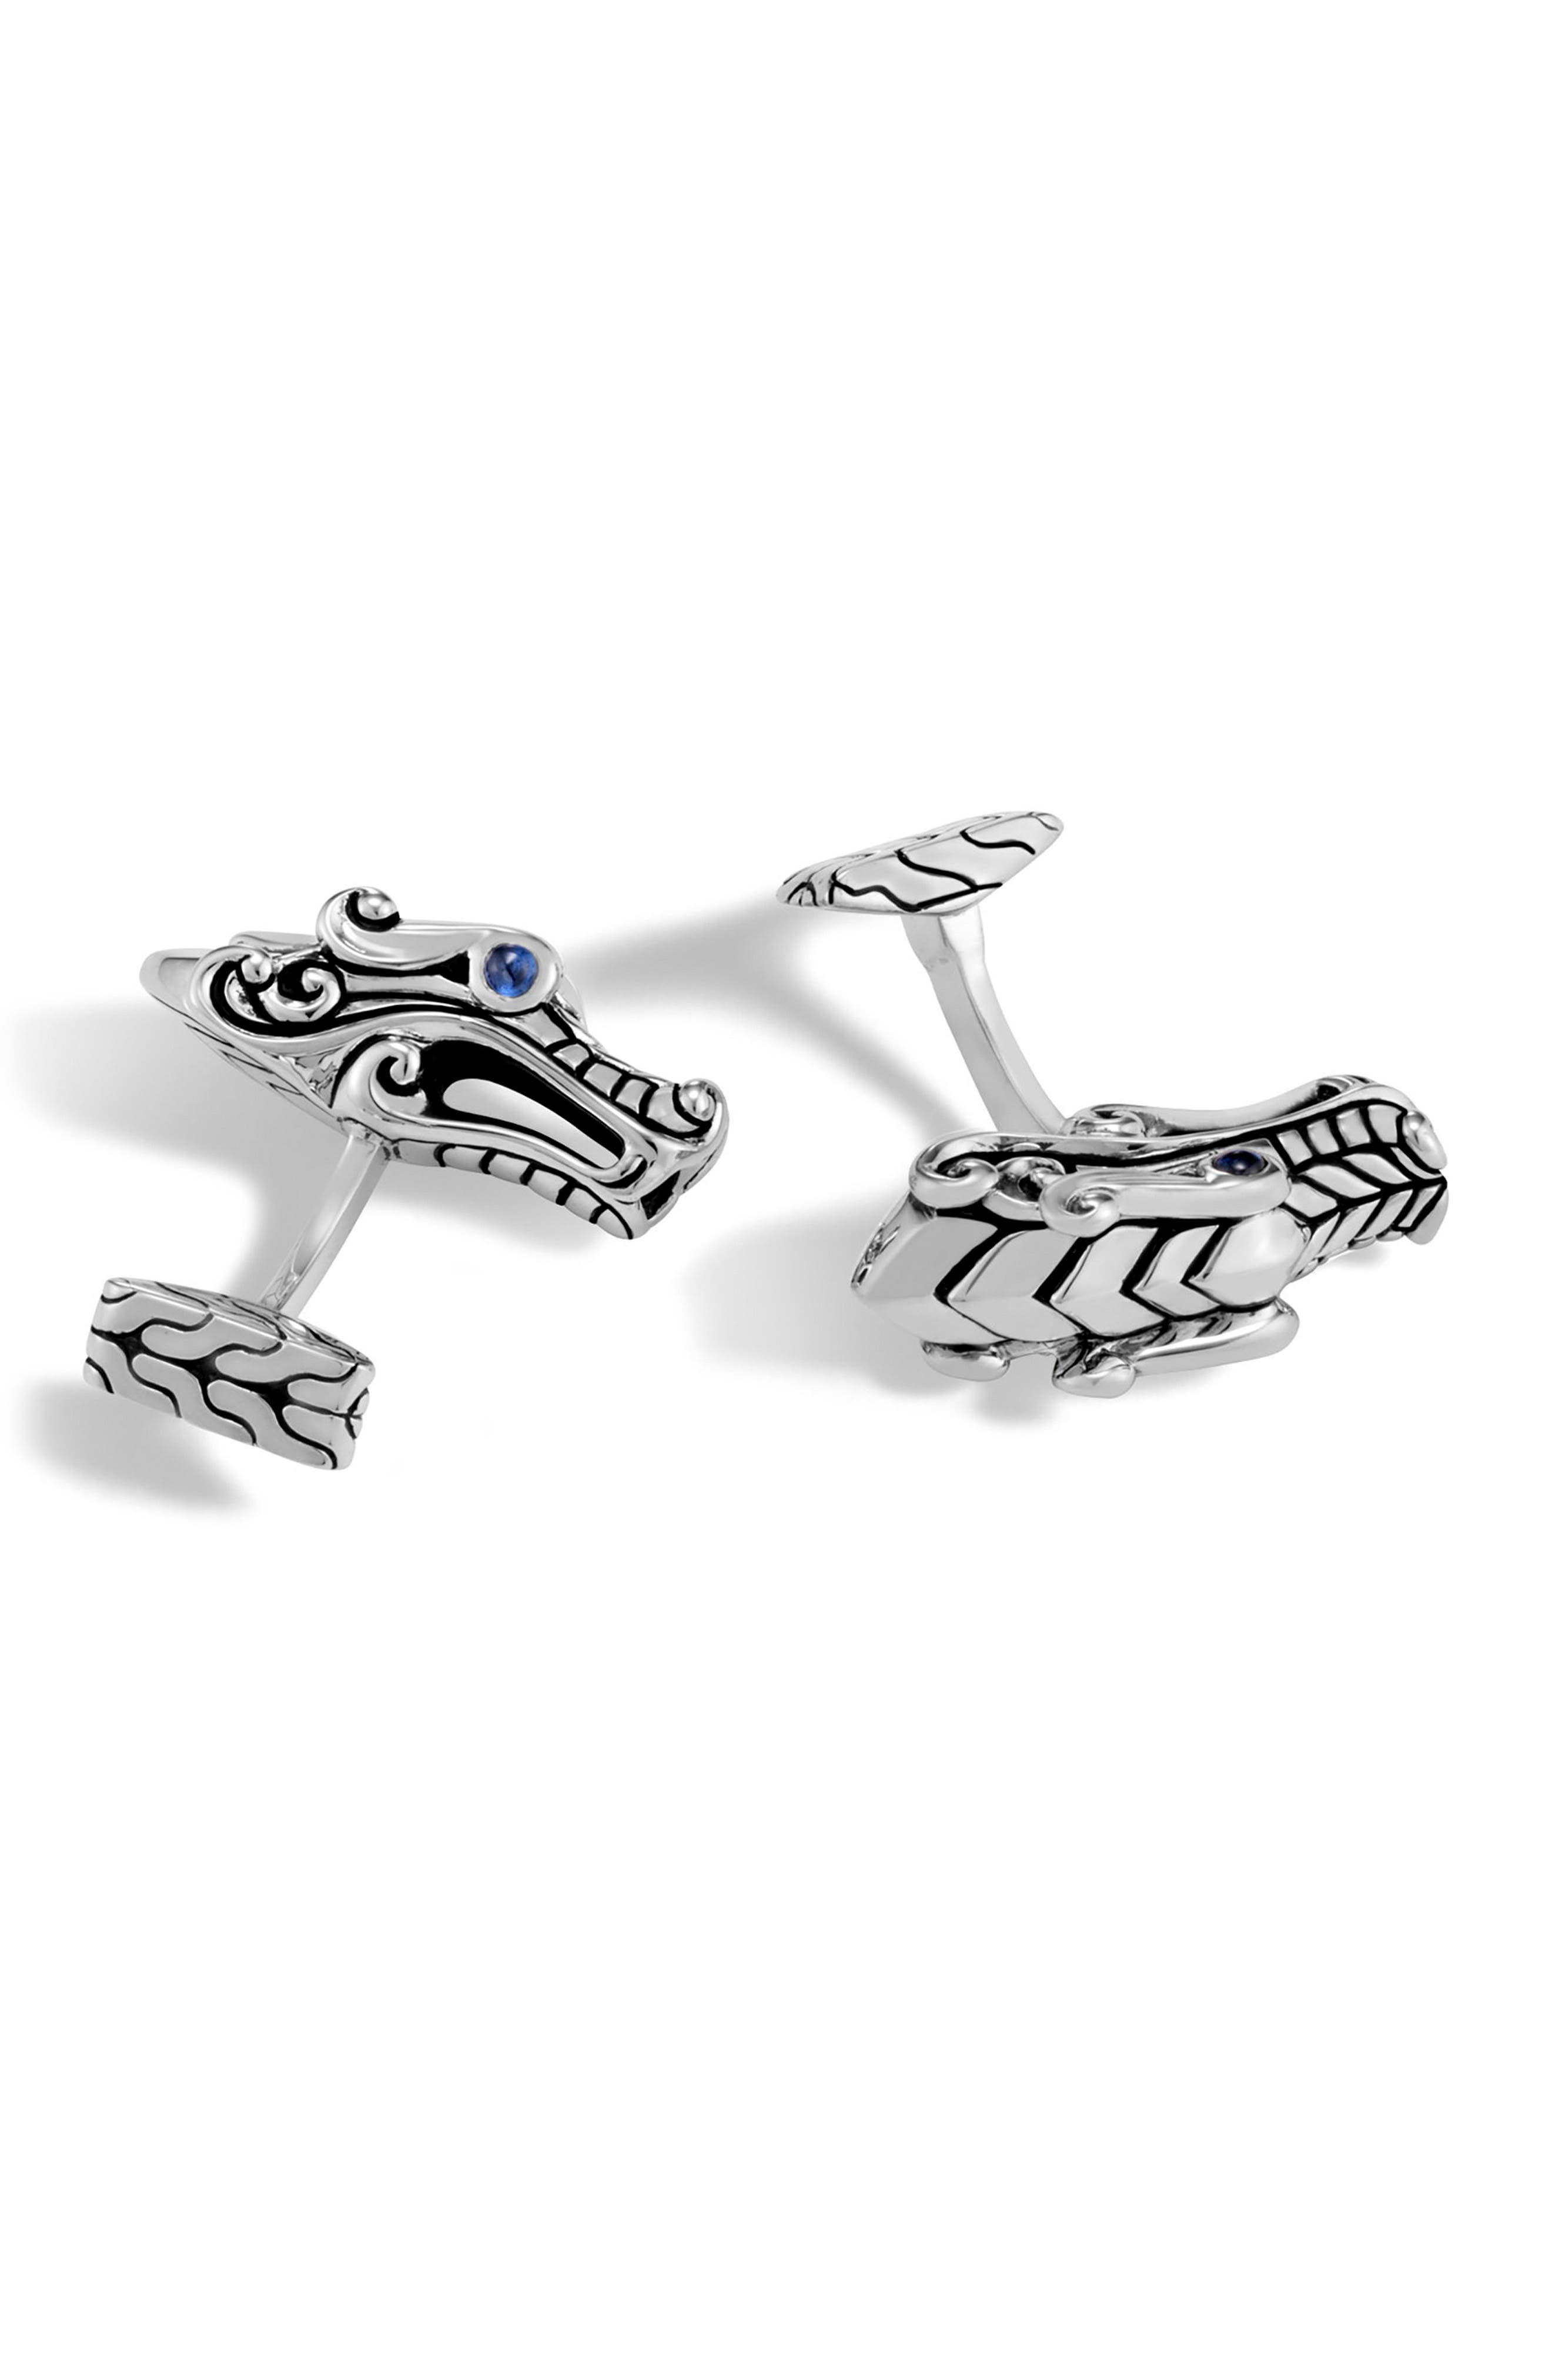 Main Image - John Hardy Legends Naga Cuff Links